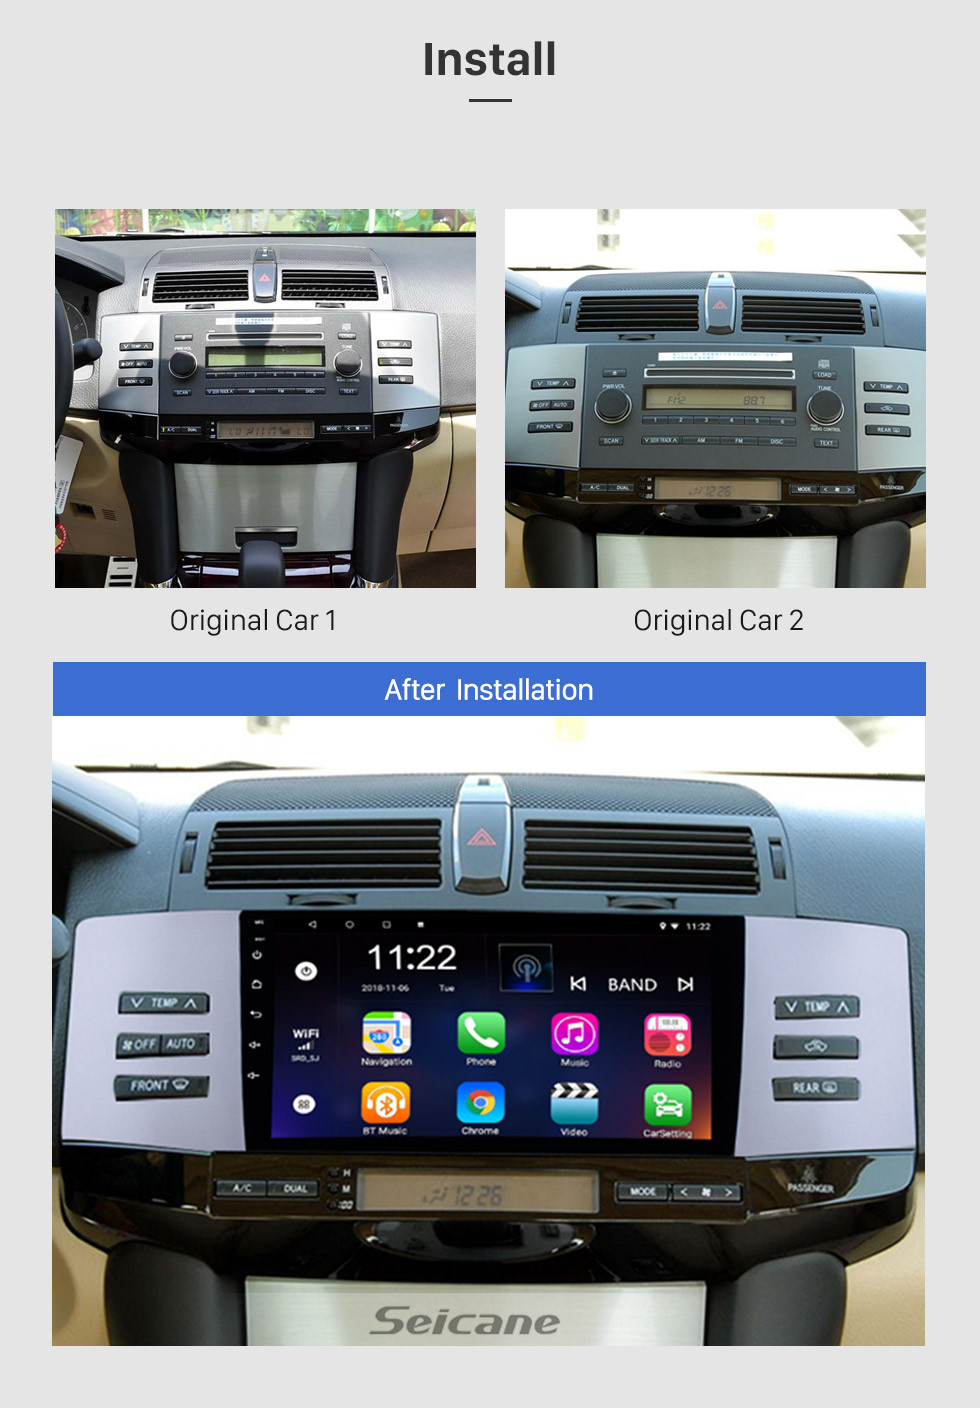 Seicane 9 Inch Android 8.1 2005-2009 Toyota Old REIZ HD Touchscreen GPS Navigation System Head Unit Support 3G WiFi Bluetooth TPMS DVR OBD II Rear View camera AUX Video